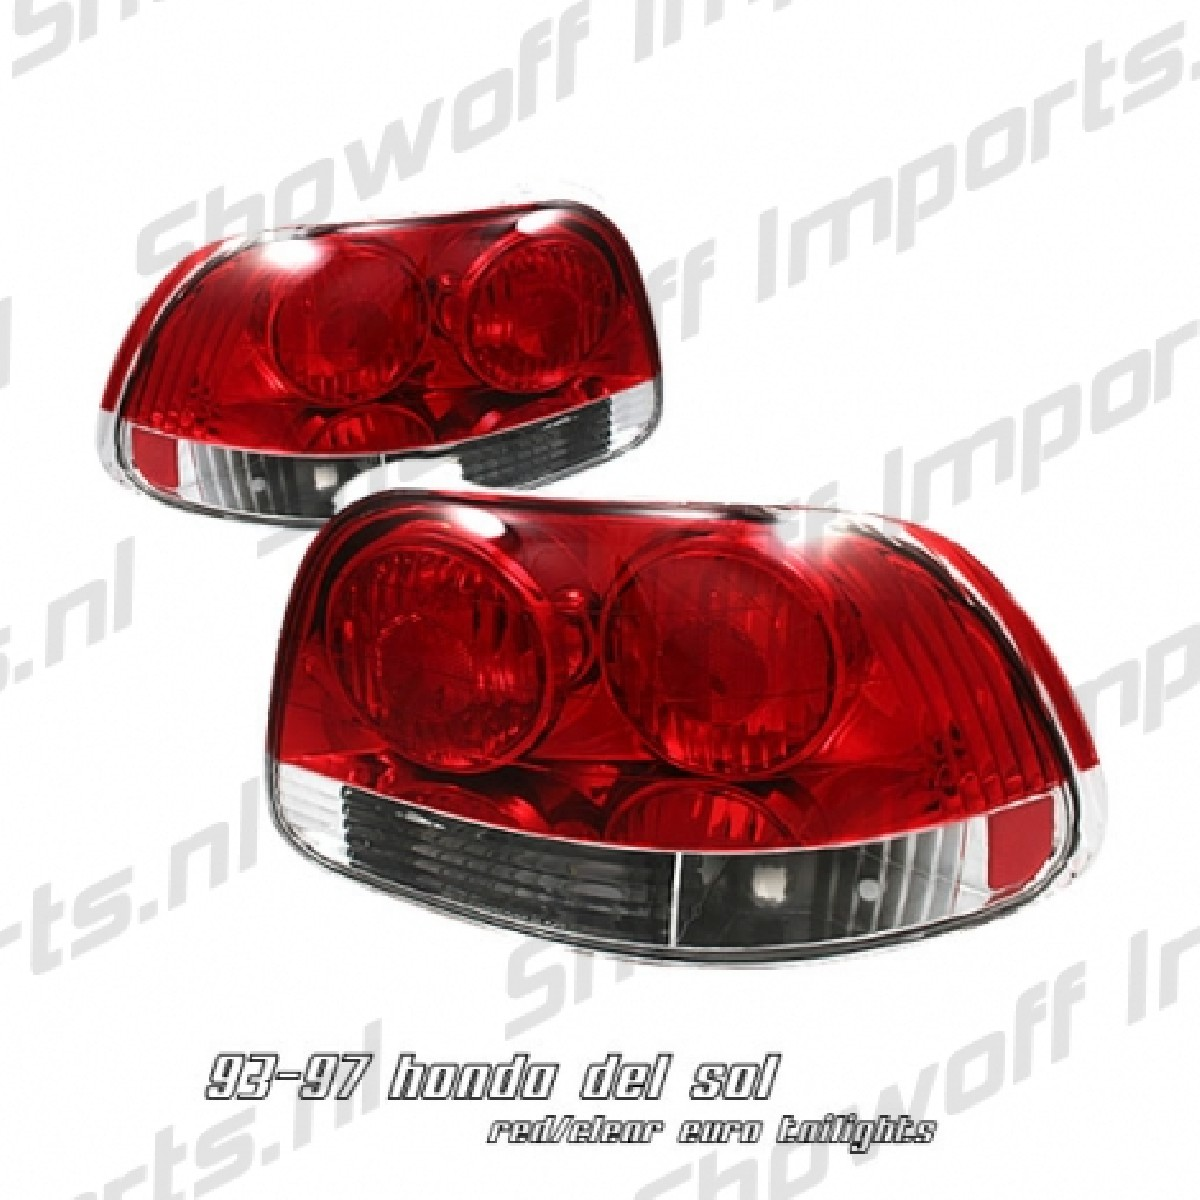 Honda Delsol 92-97 APC Look Red/Clear G6 Taillights